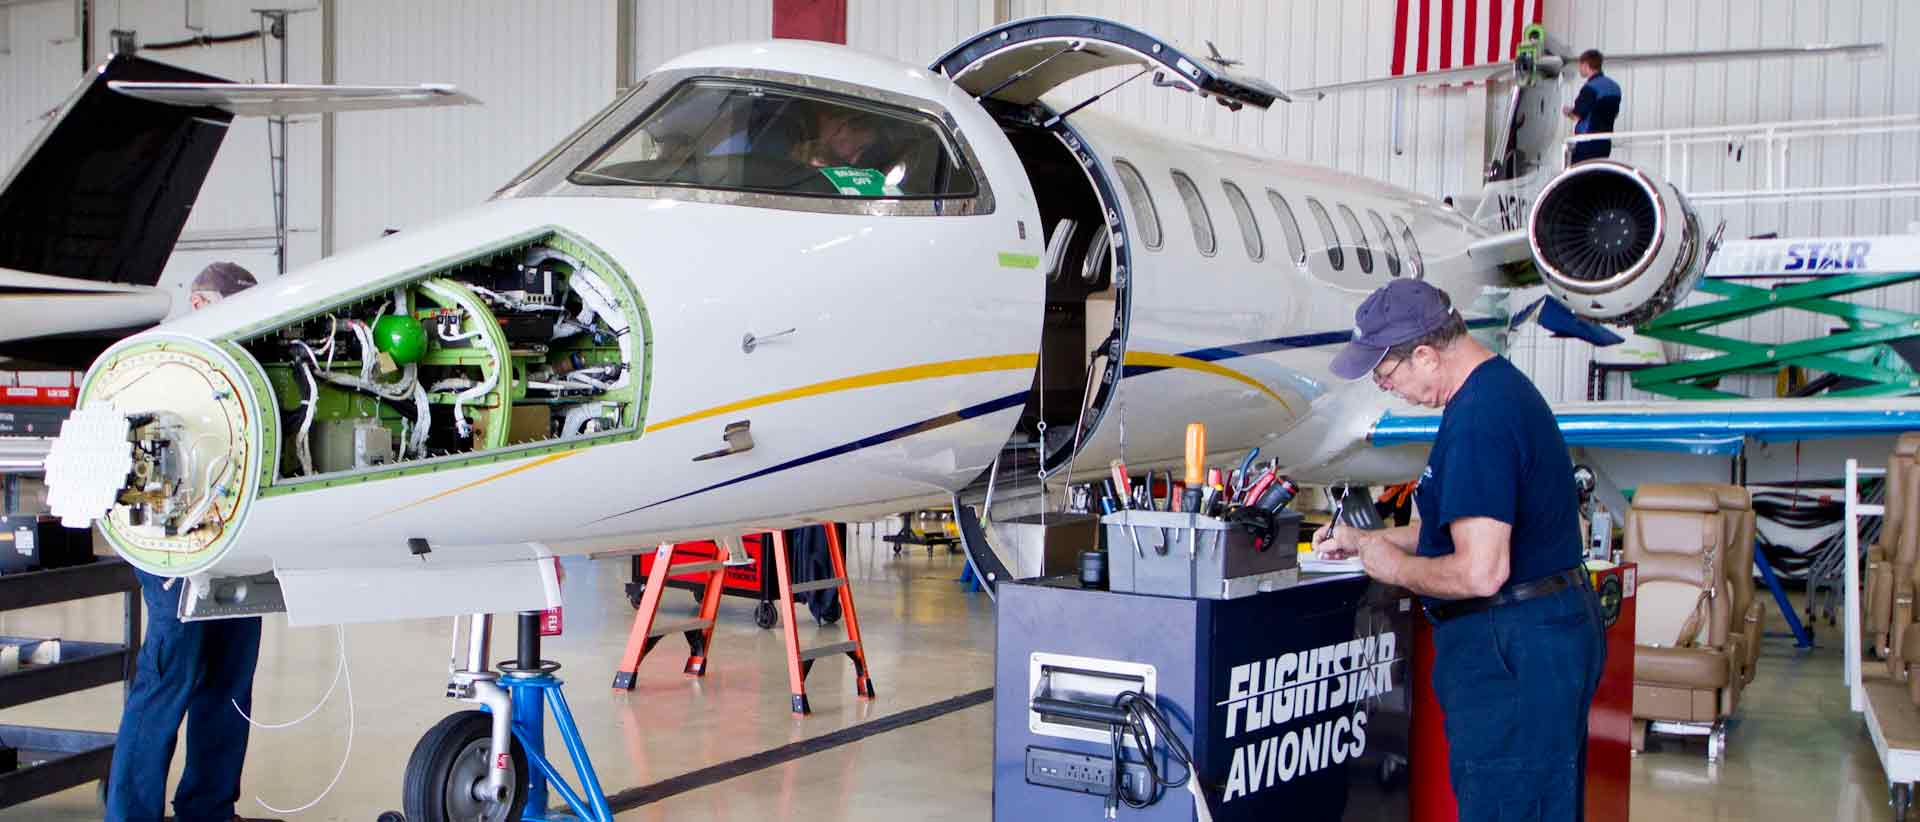 ADS-B instalation Learjet 45 Flightstar